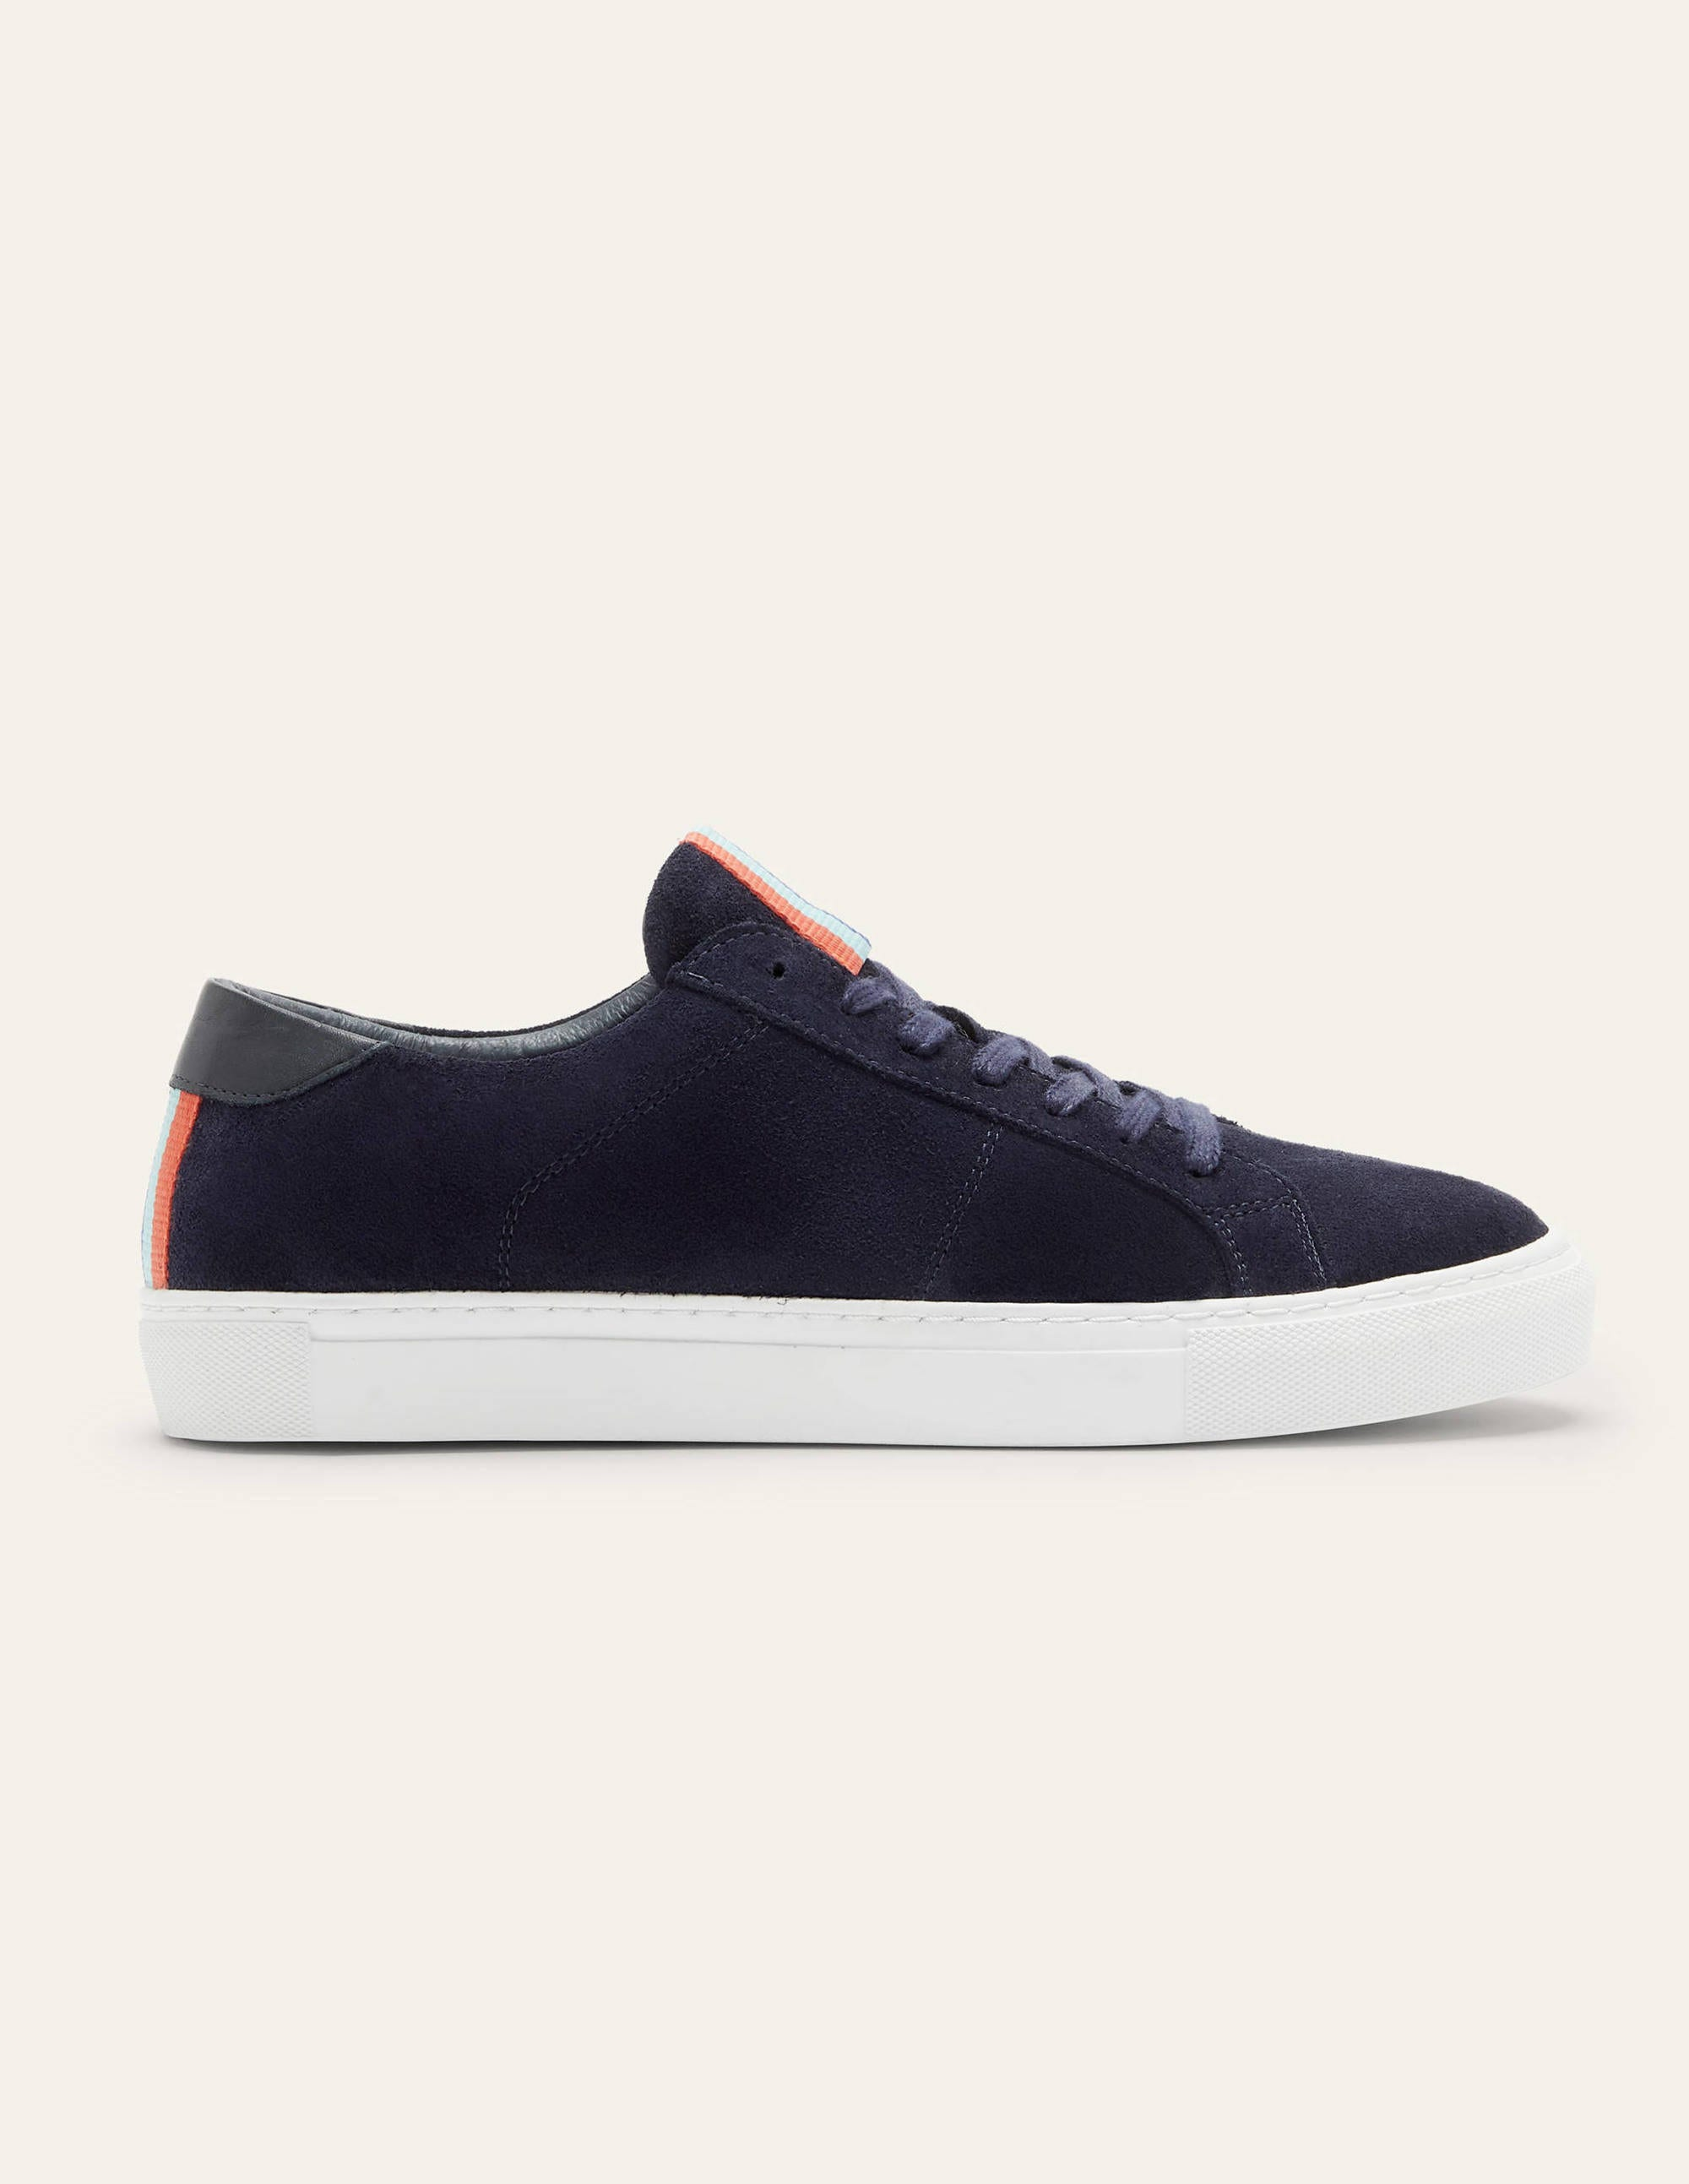 Leather Trainers - Navy Suede   Boden US